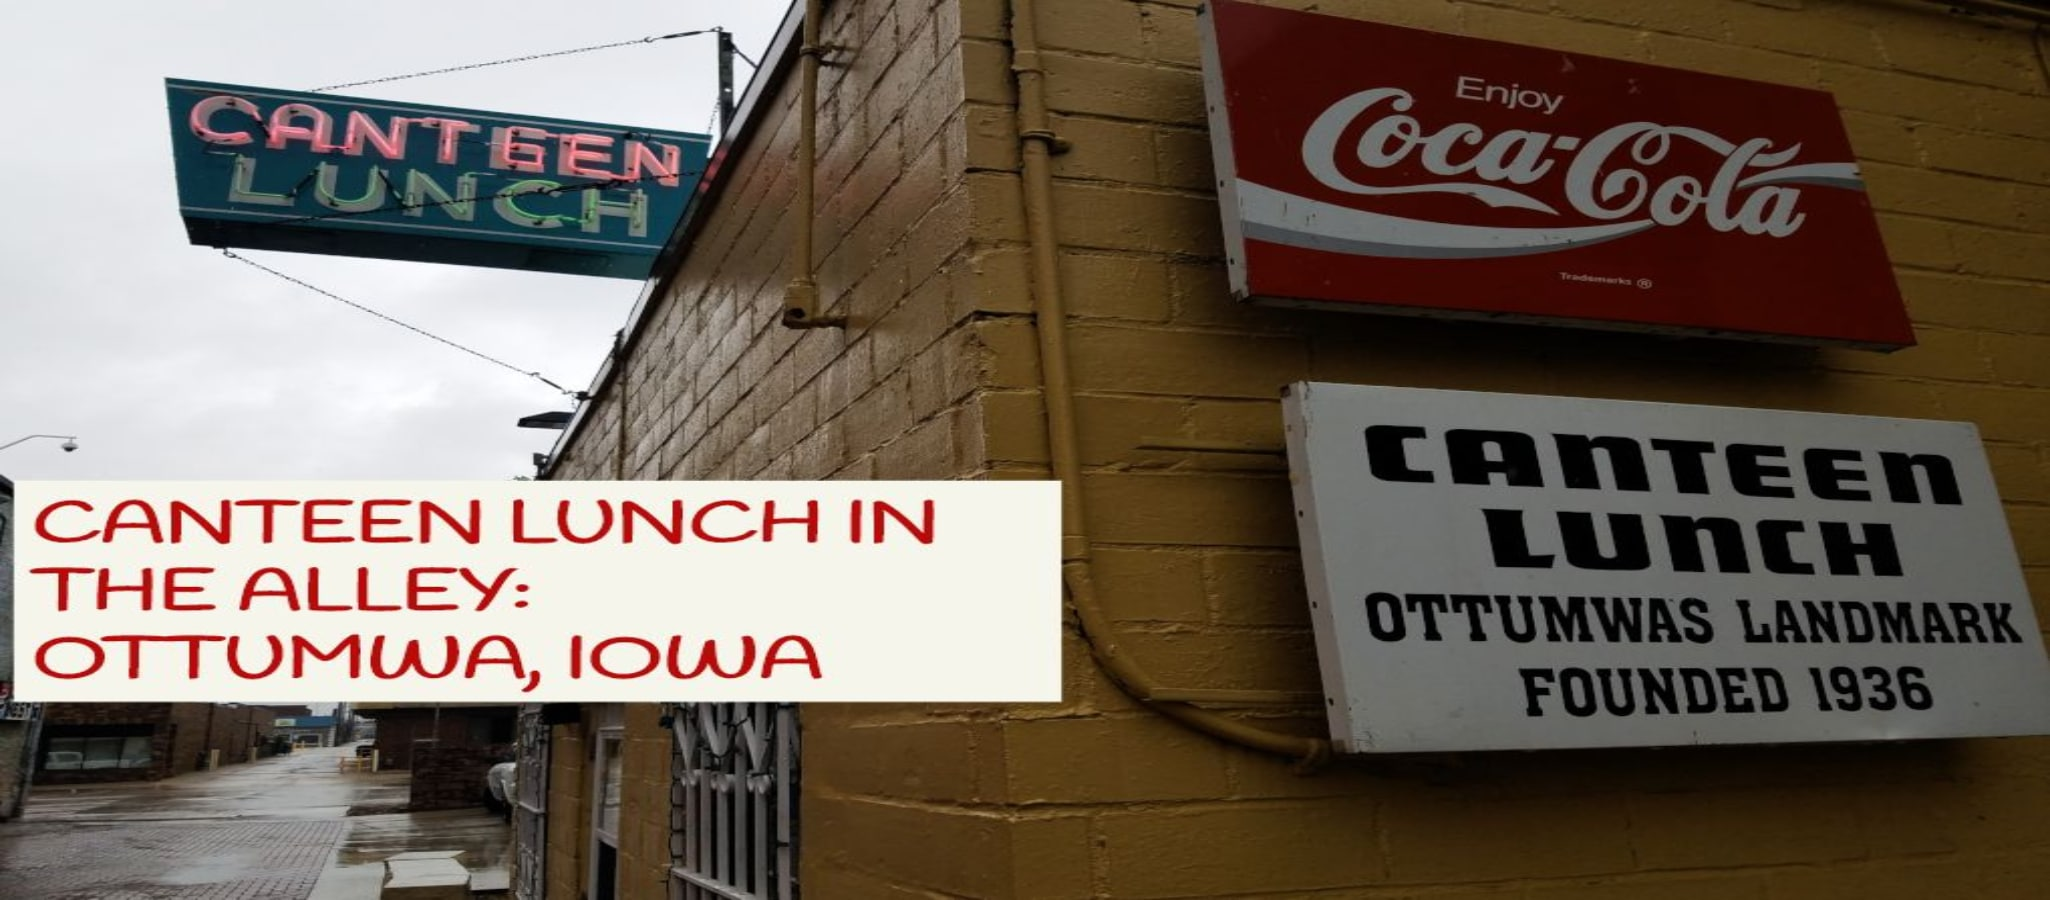 Iowa's Award Winning Canteen Lunch In The Alley- Ottumwa, Iowa